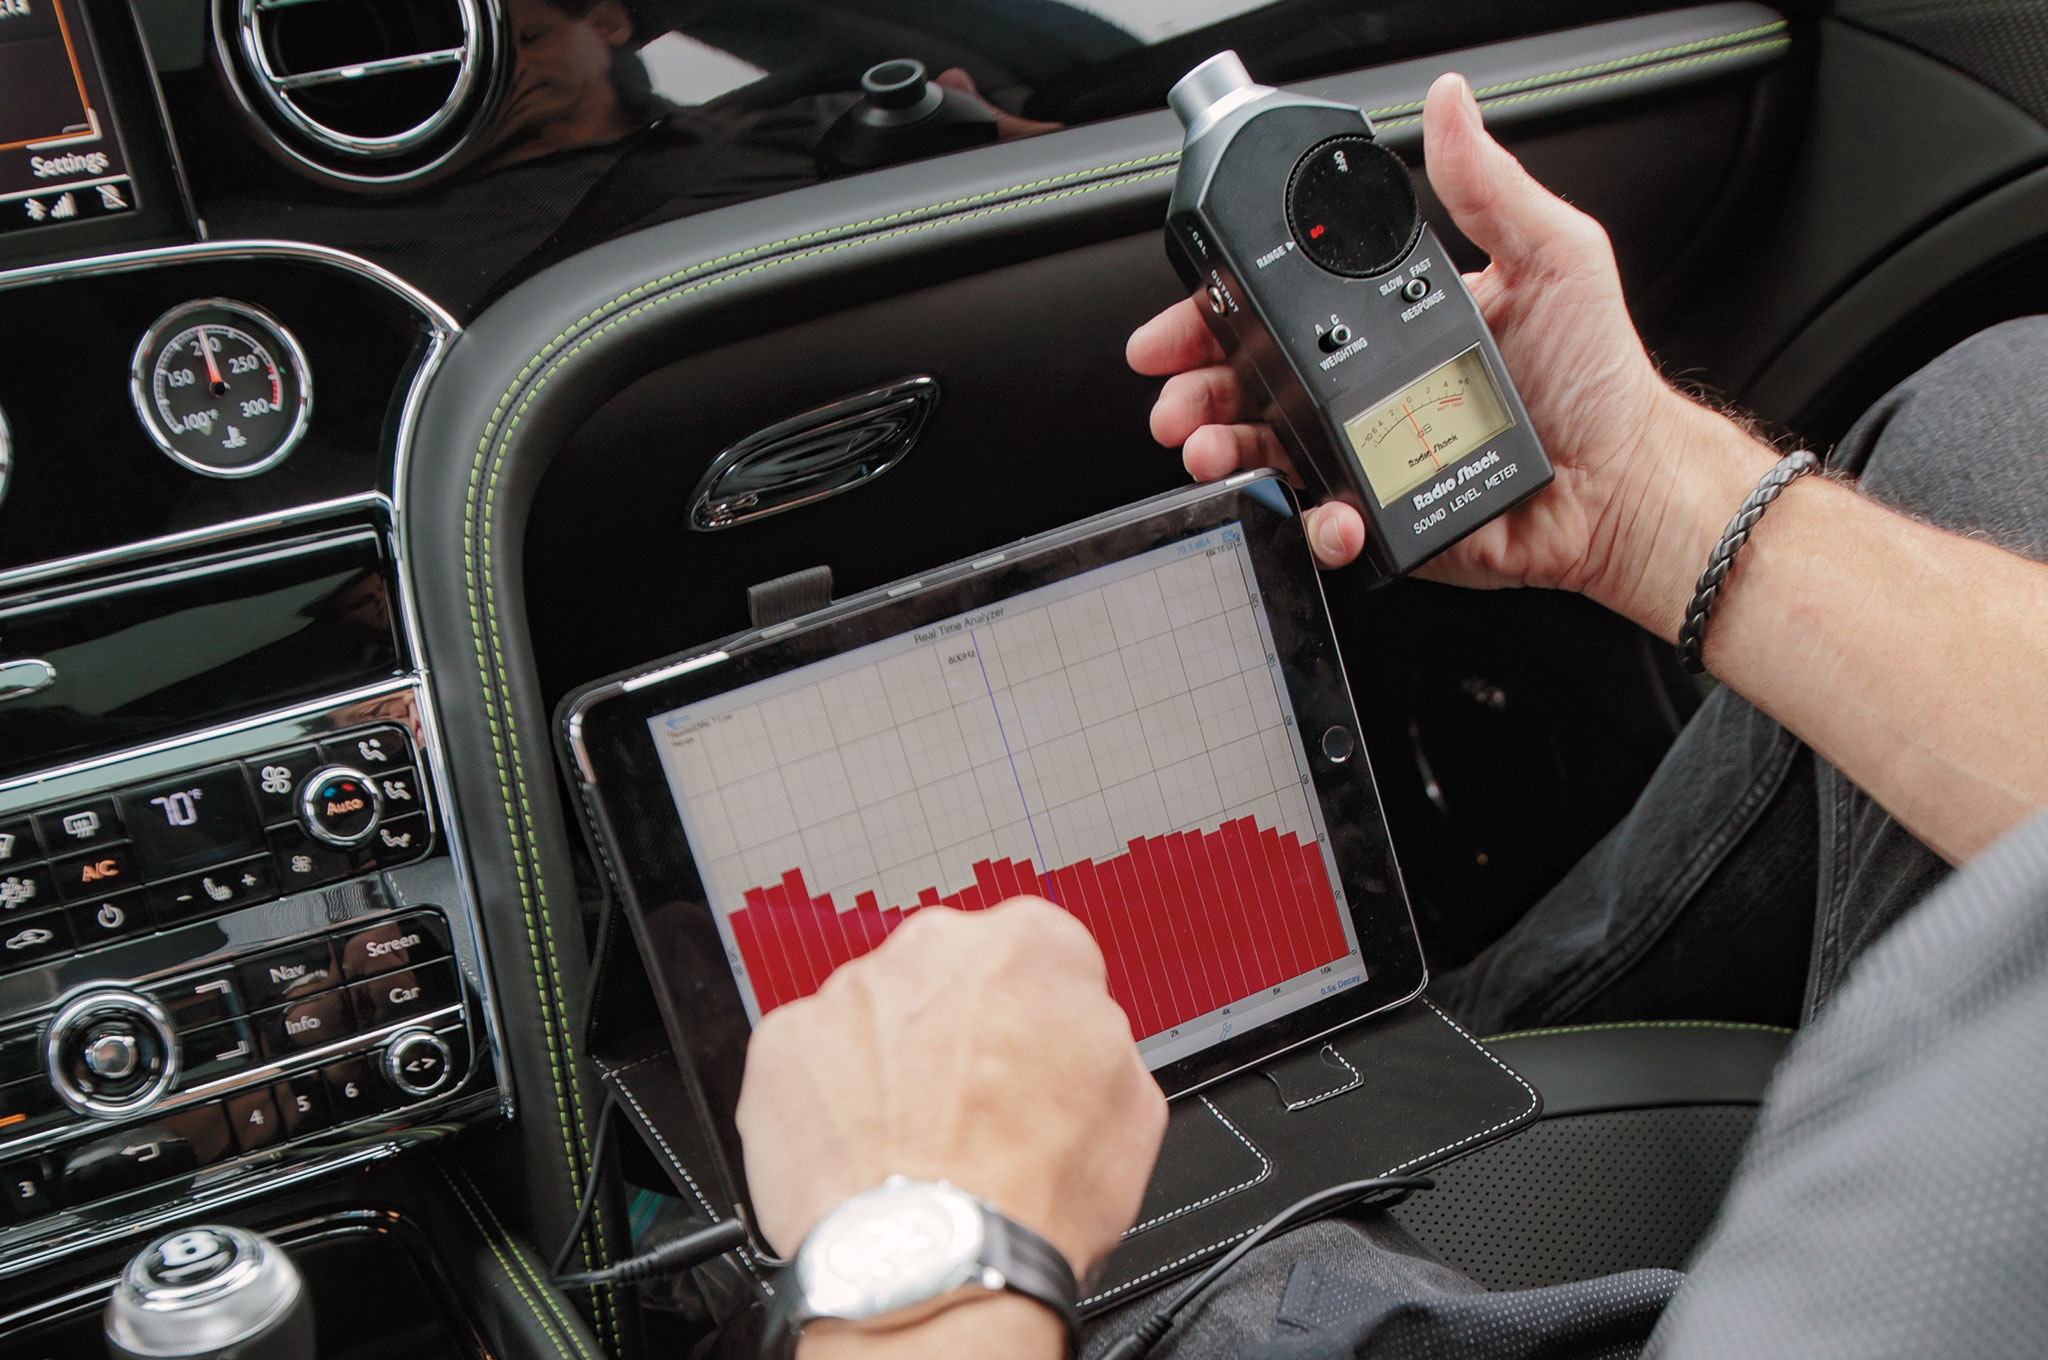 Sonic Booms Putting 8 Of The Best Car Audio Systems To The Test